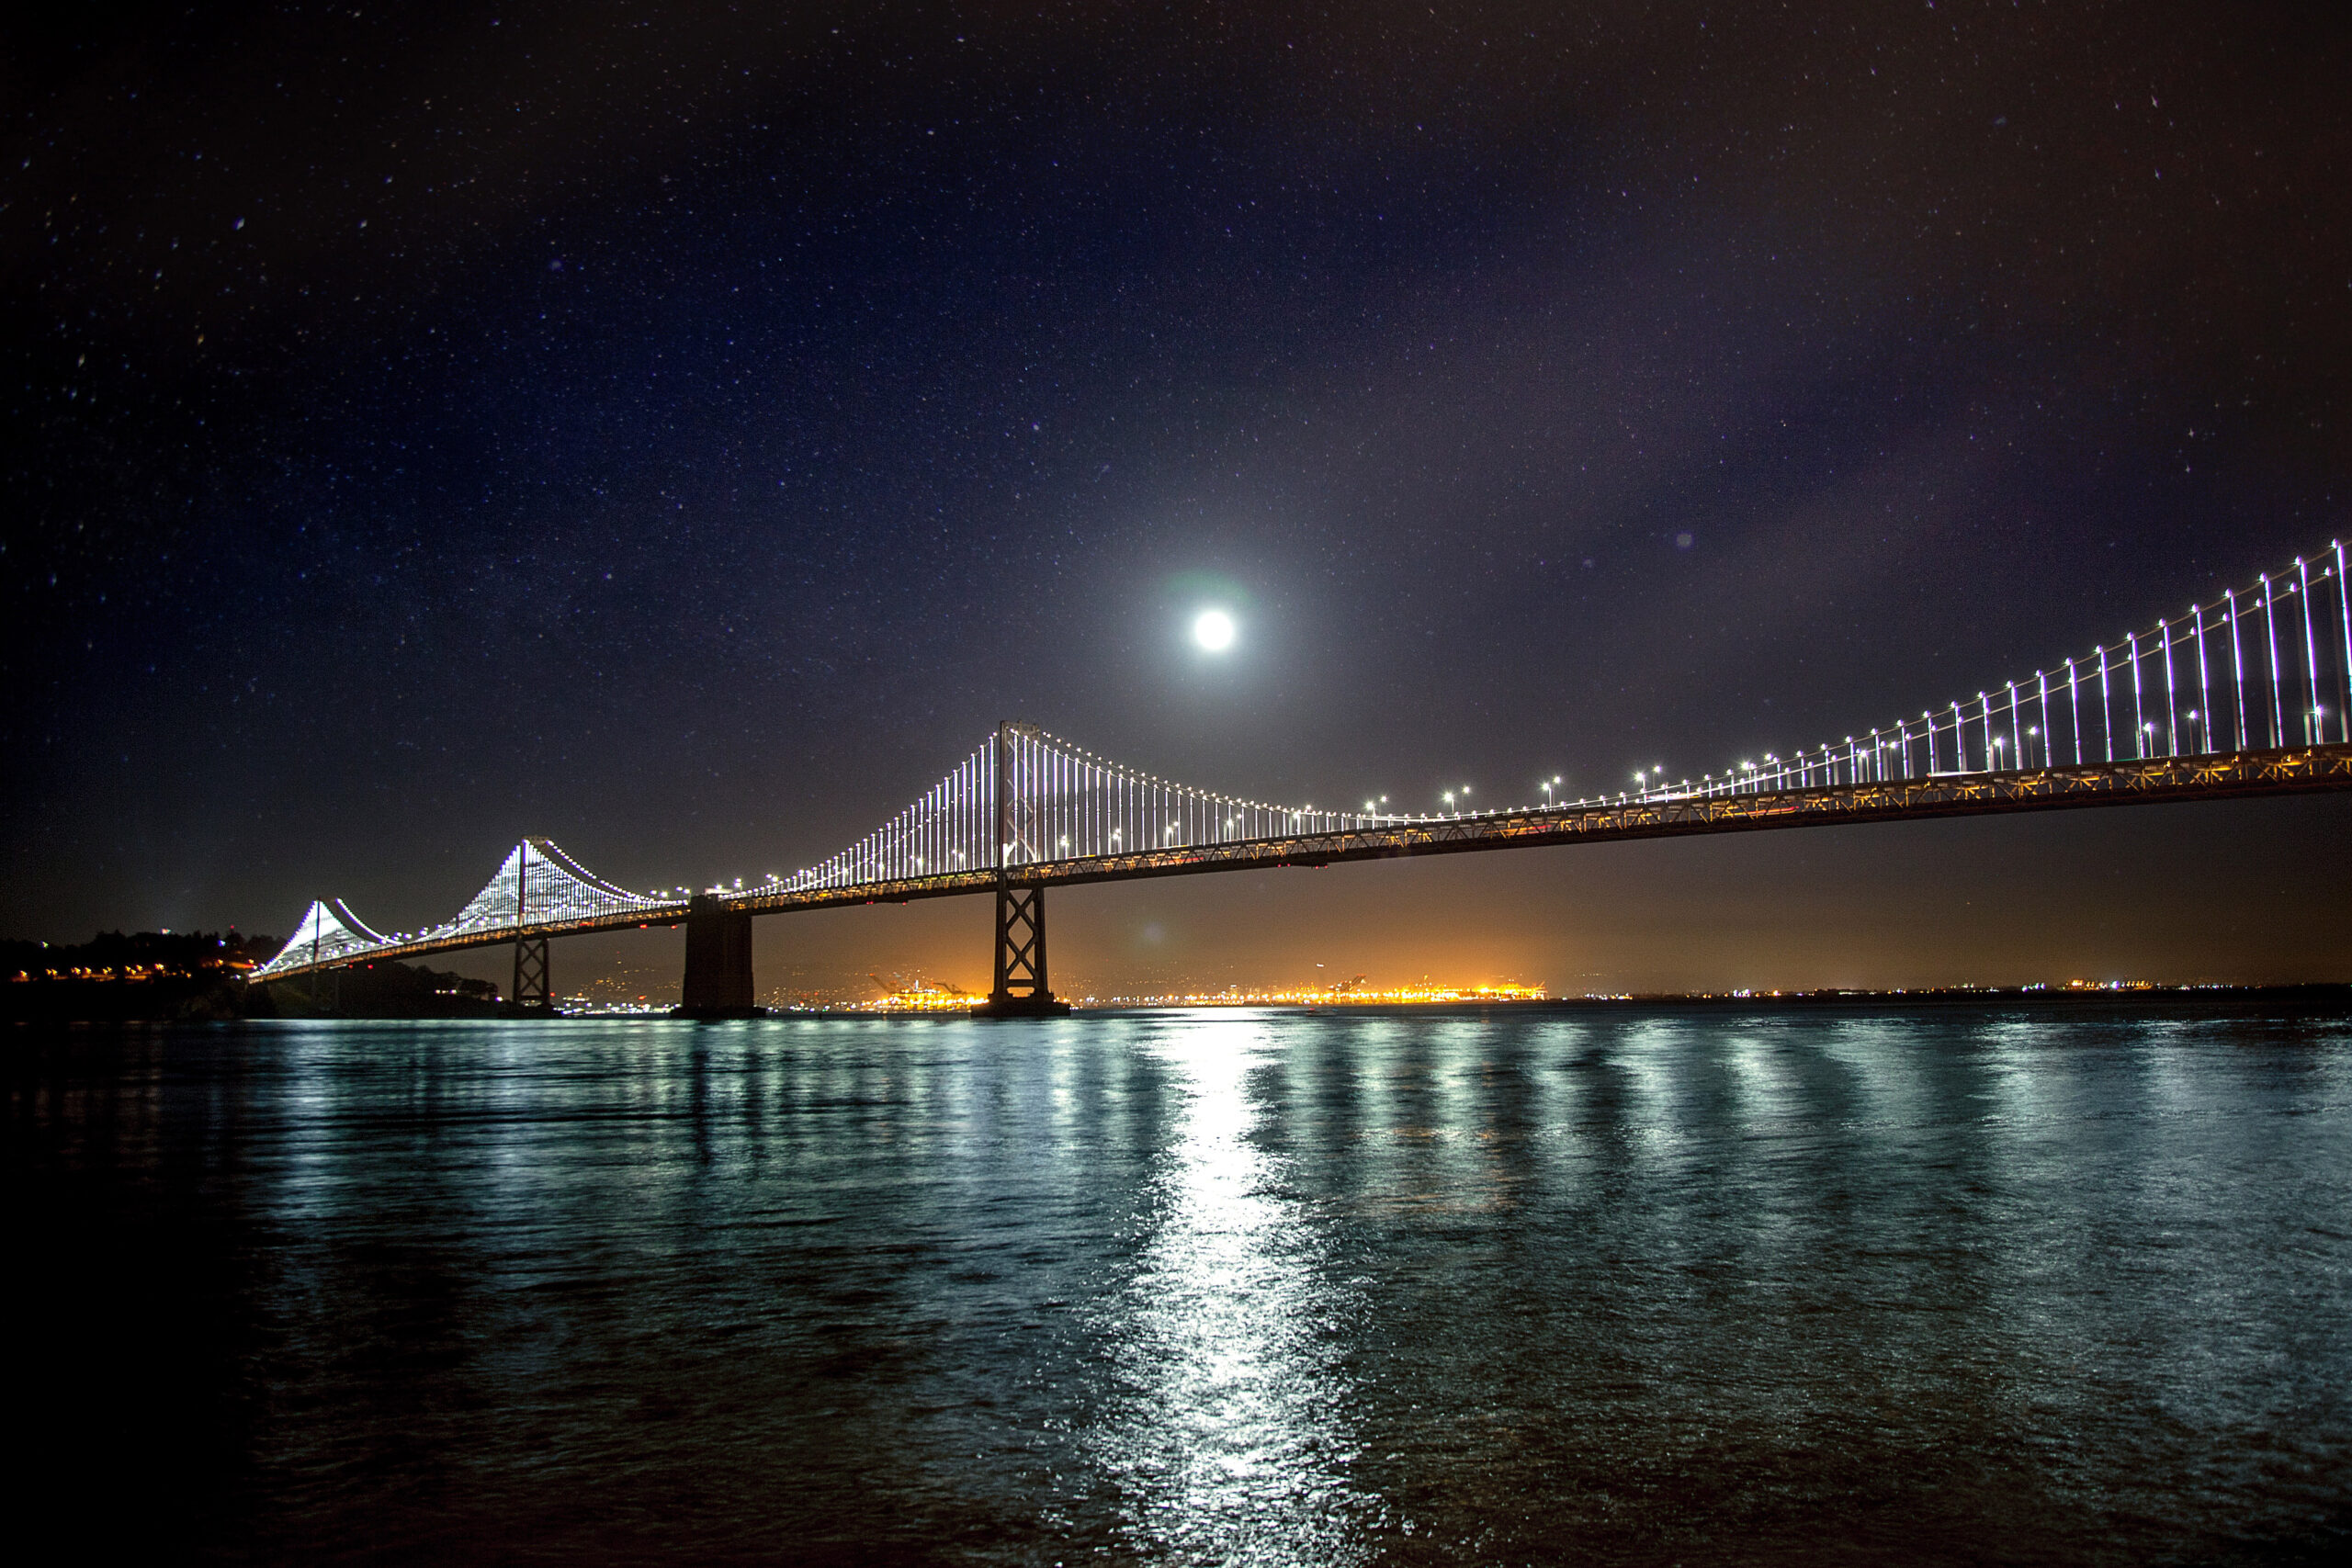 The Oakland San Francisco Bay Bridge